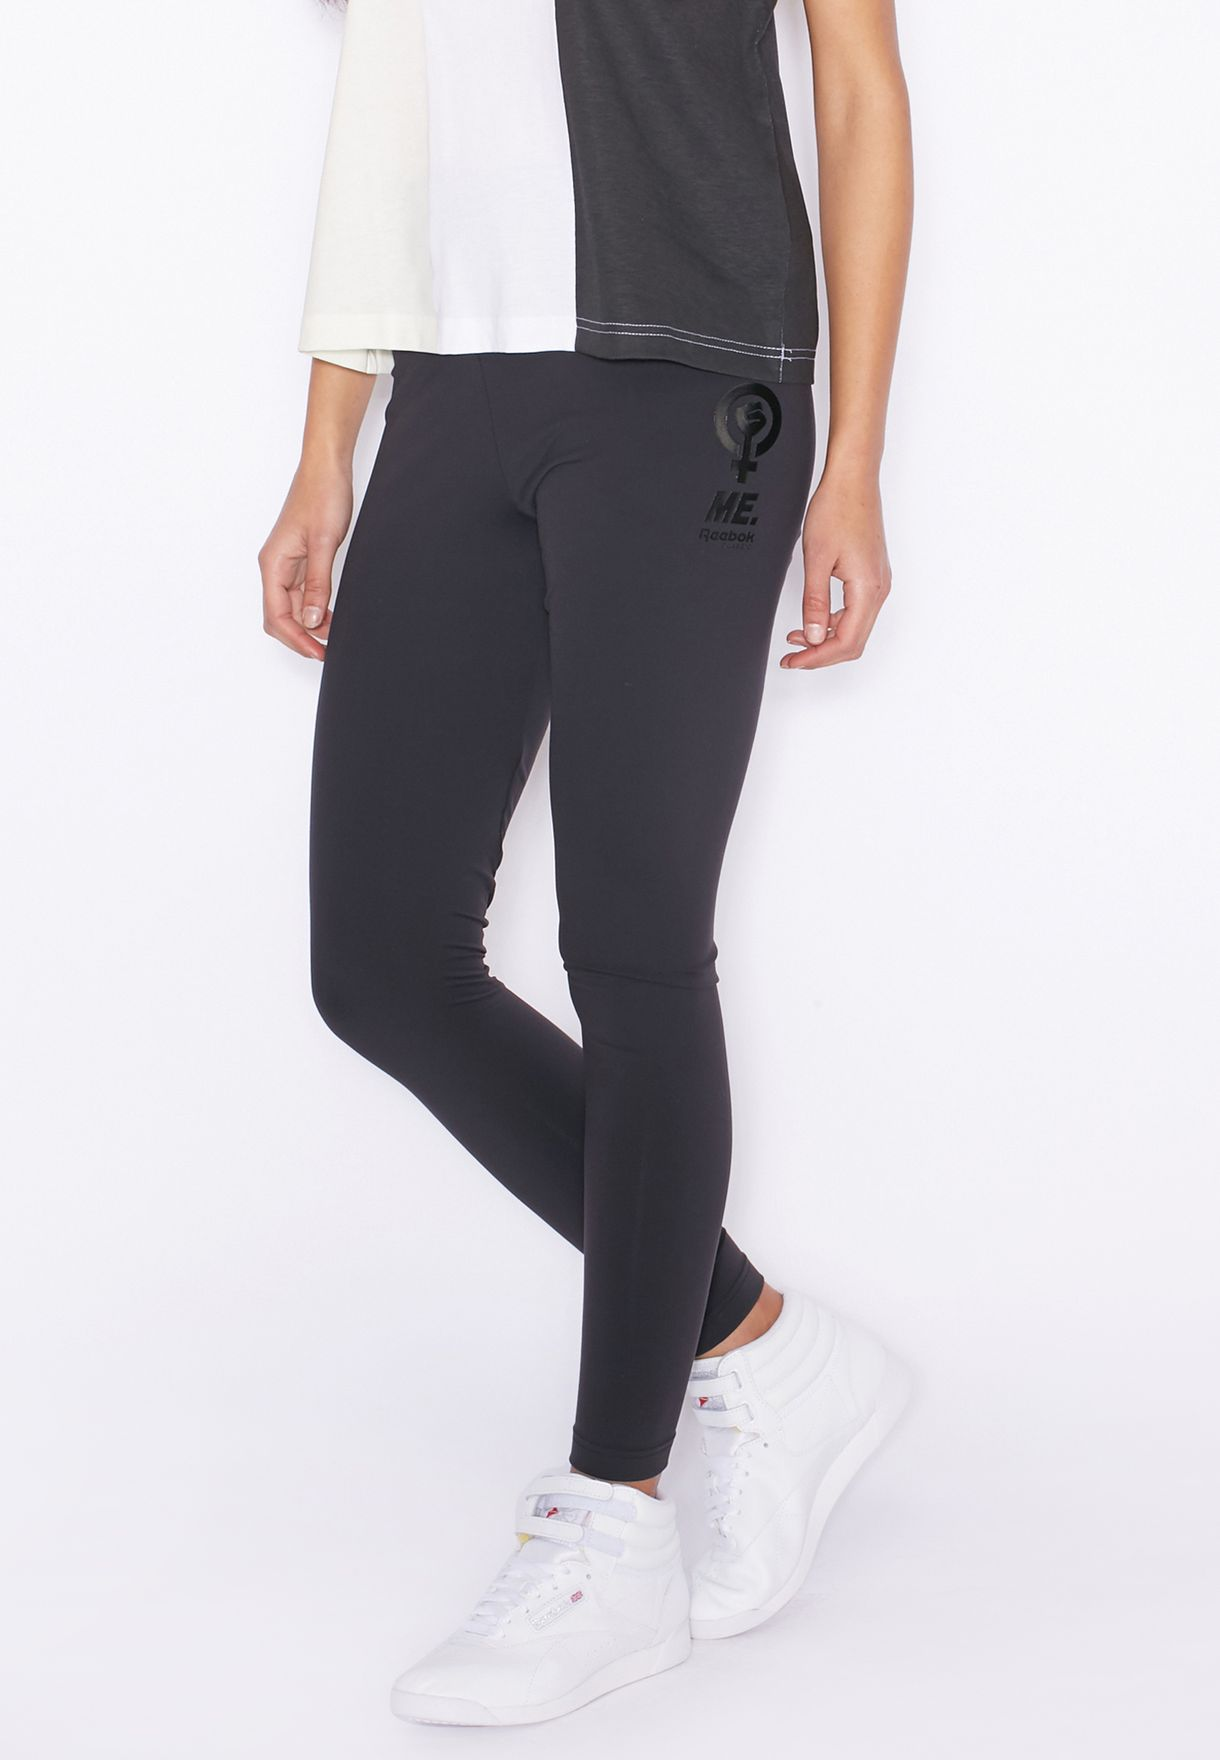 589e34cb210 Melody Ehsani Tonal Leggings